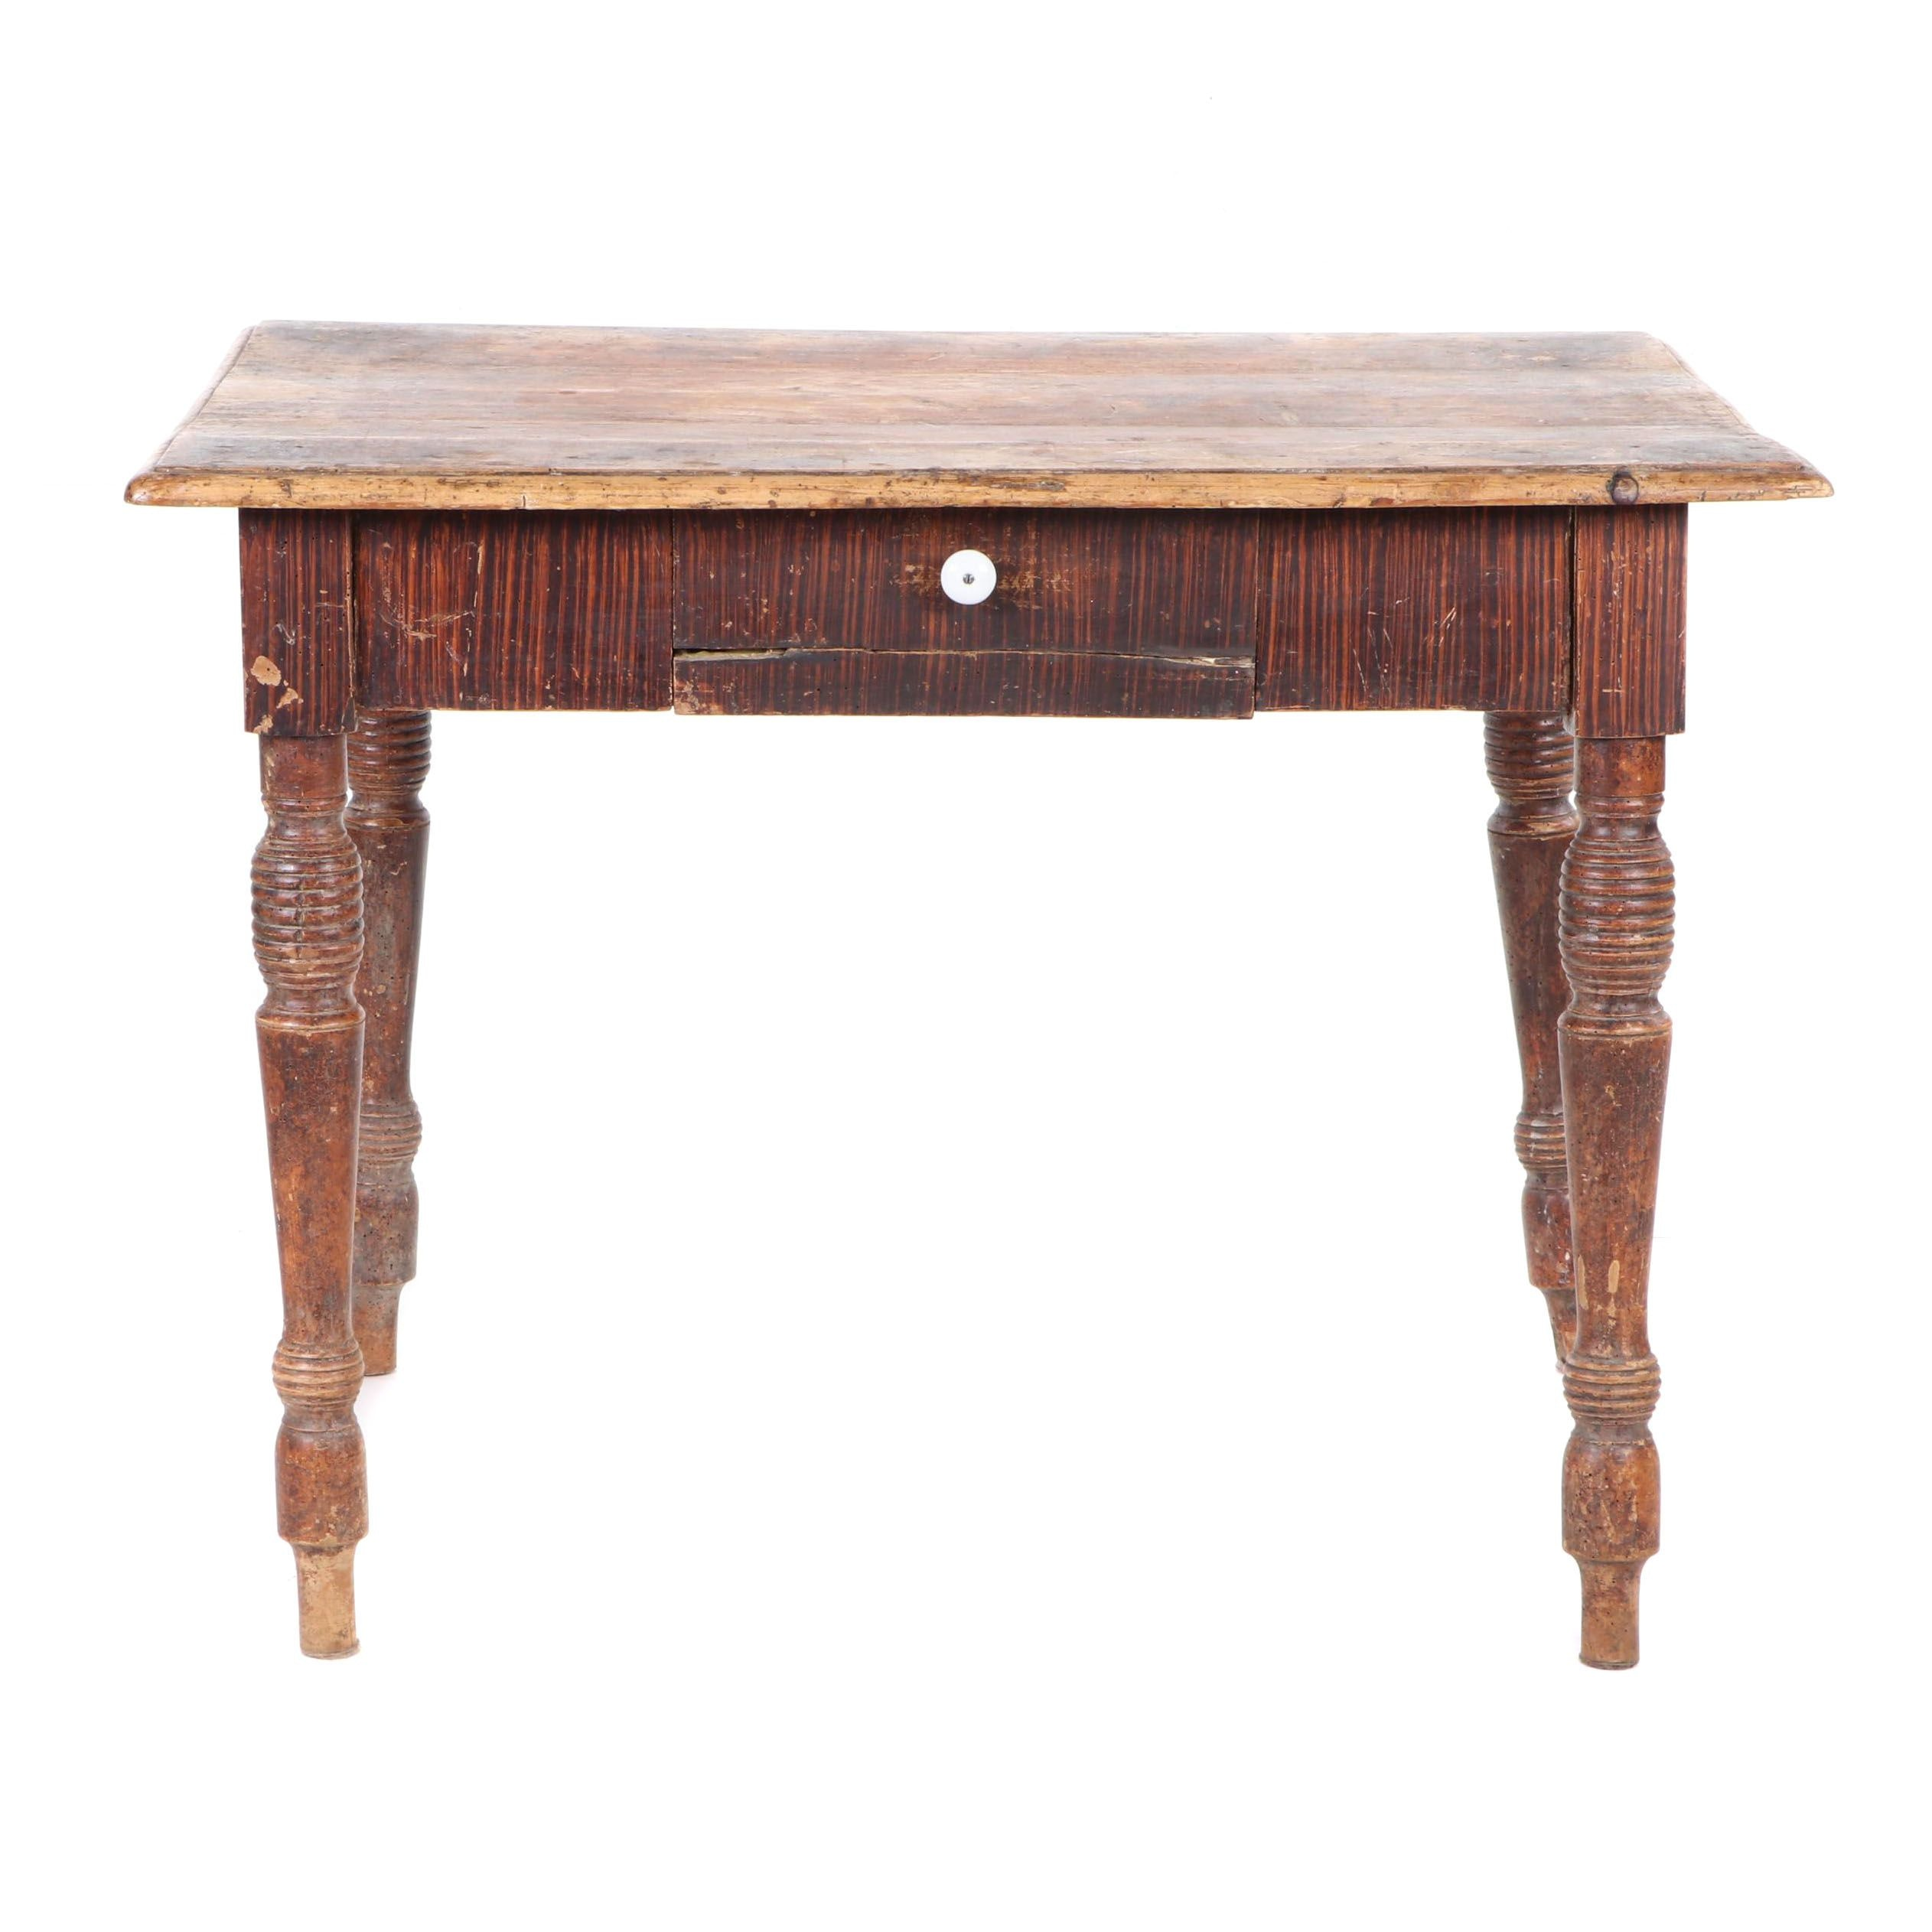 Turned Leg Drafting Table with Painted Wood Grain, circa 1900